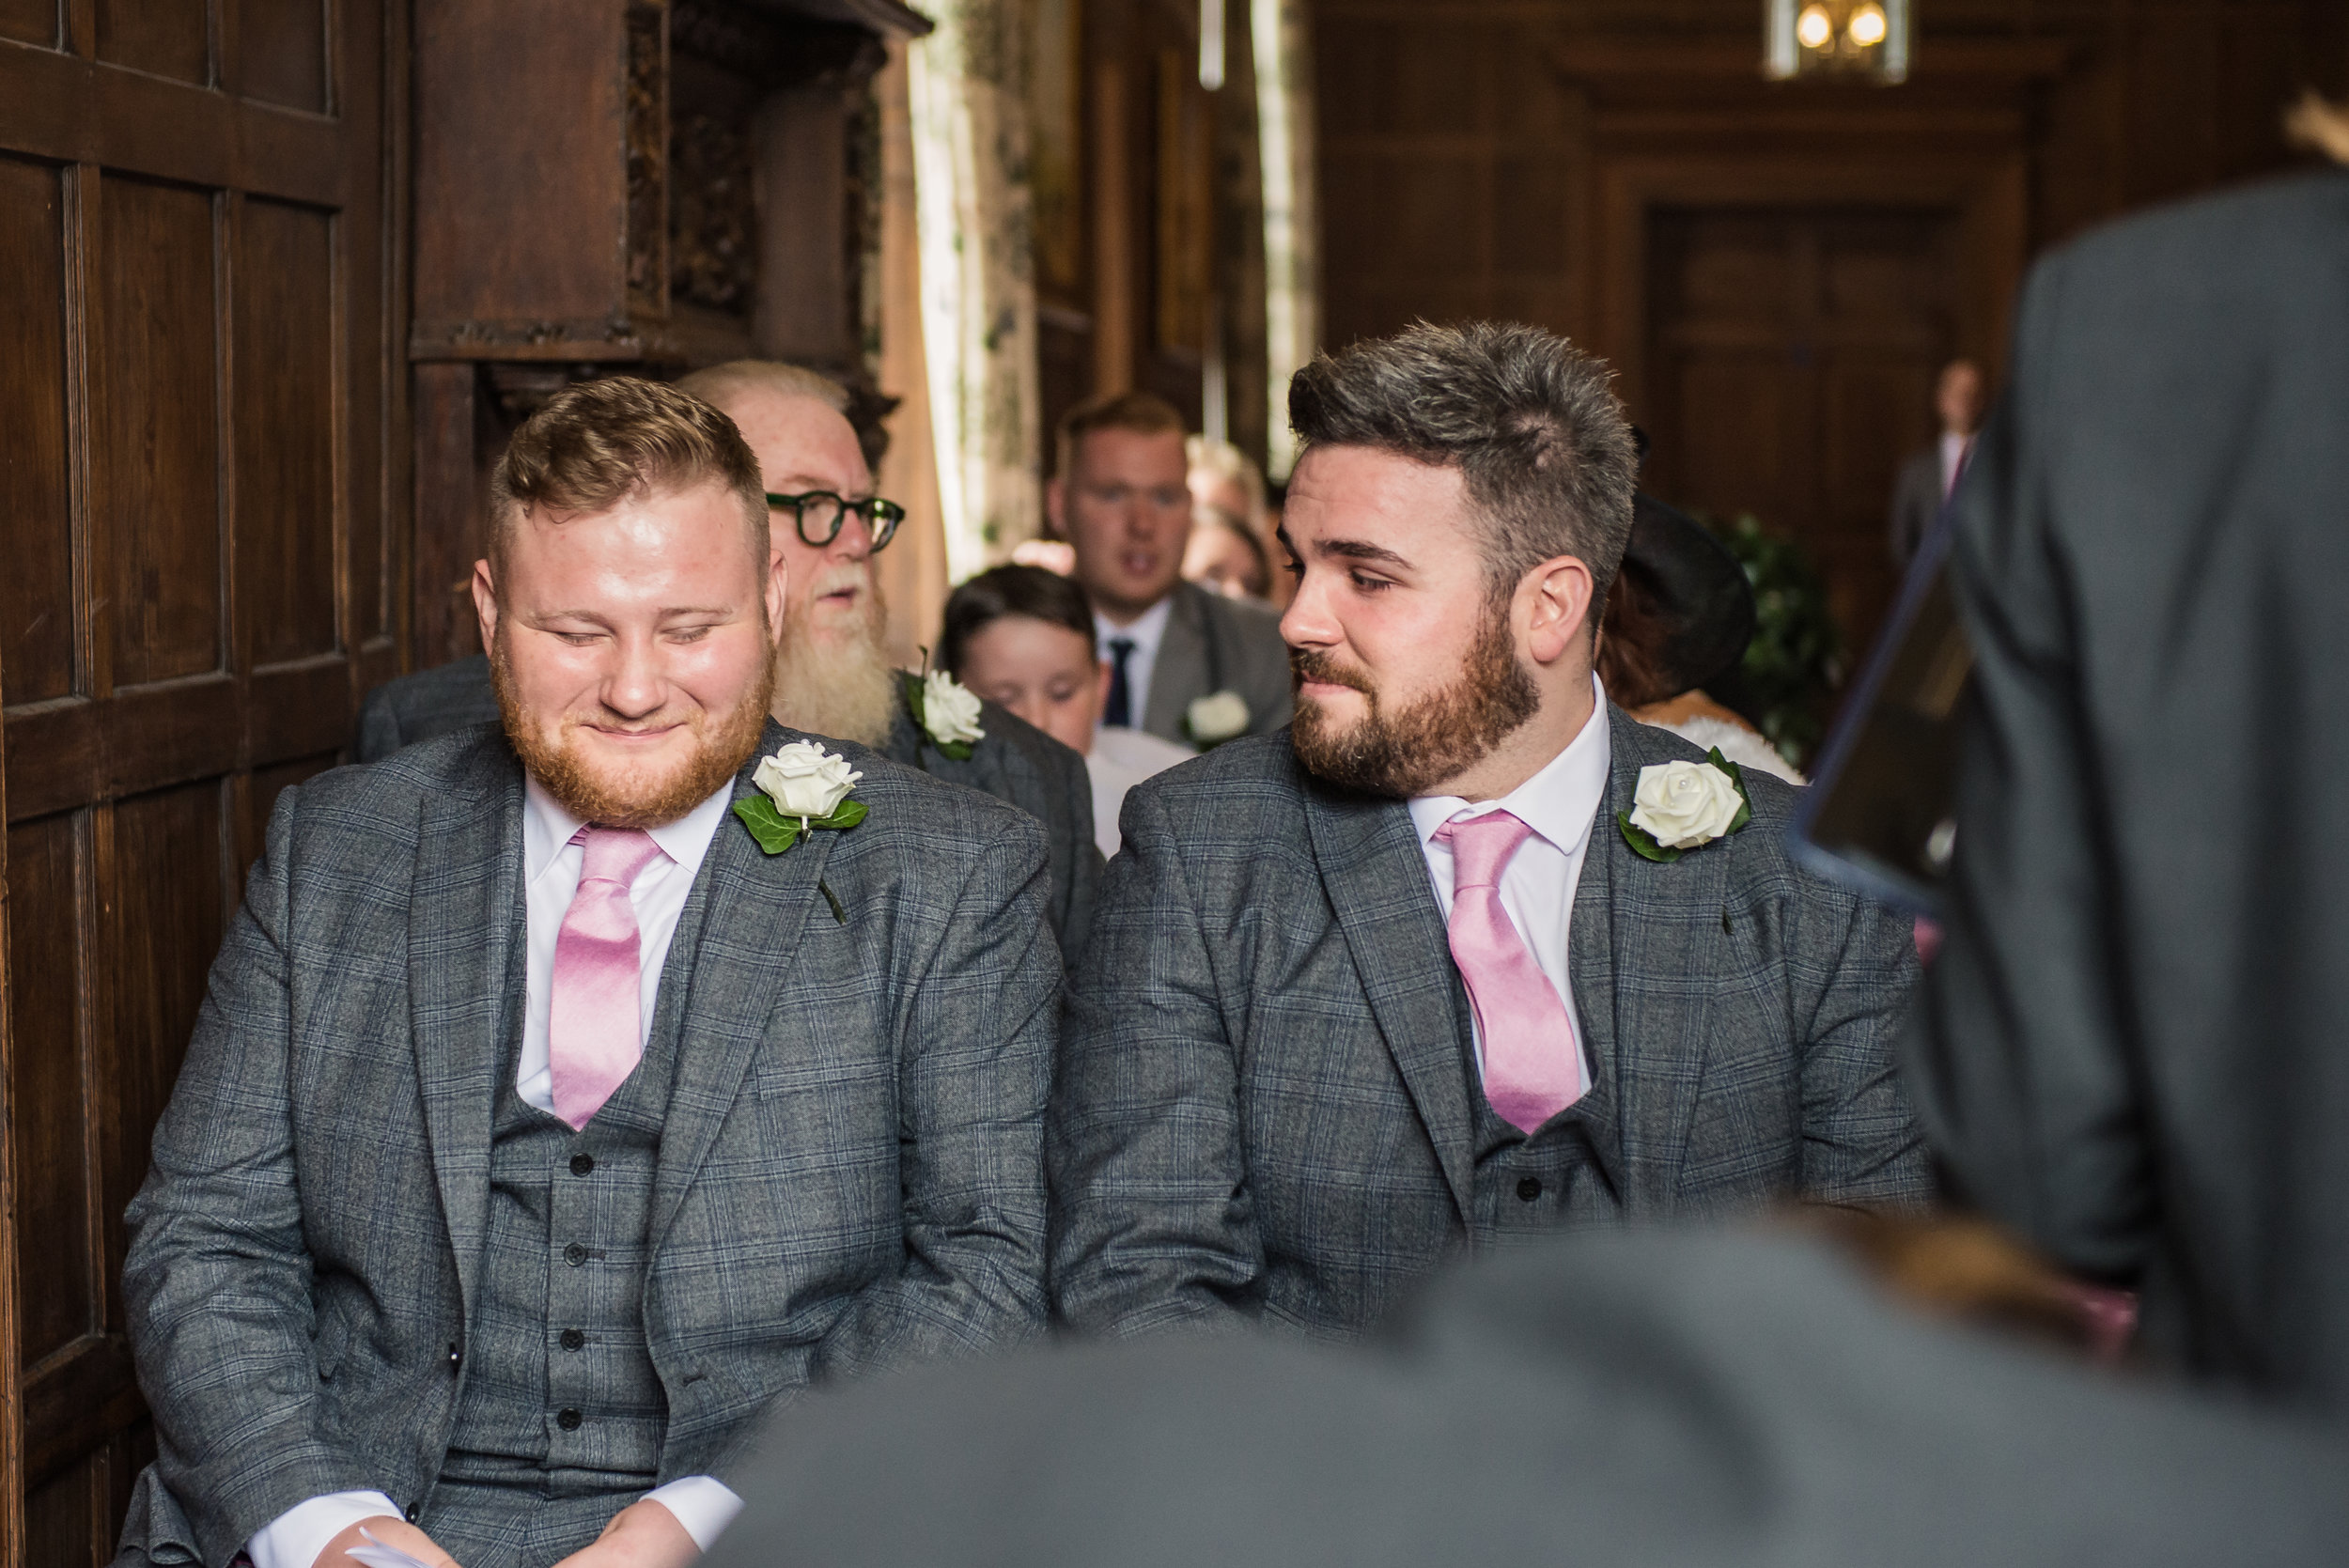 castle Bromwich hall hotel wedding photography awaiting the arrival of the bride something is funny